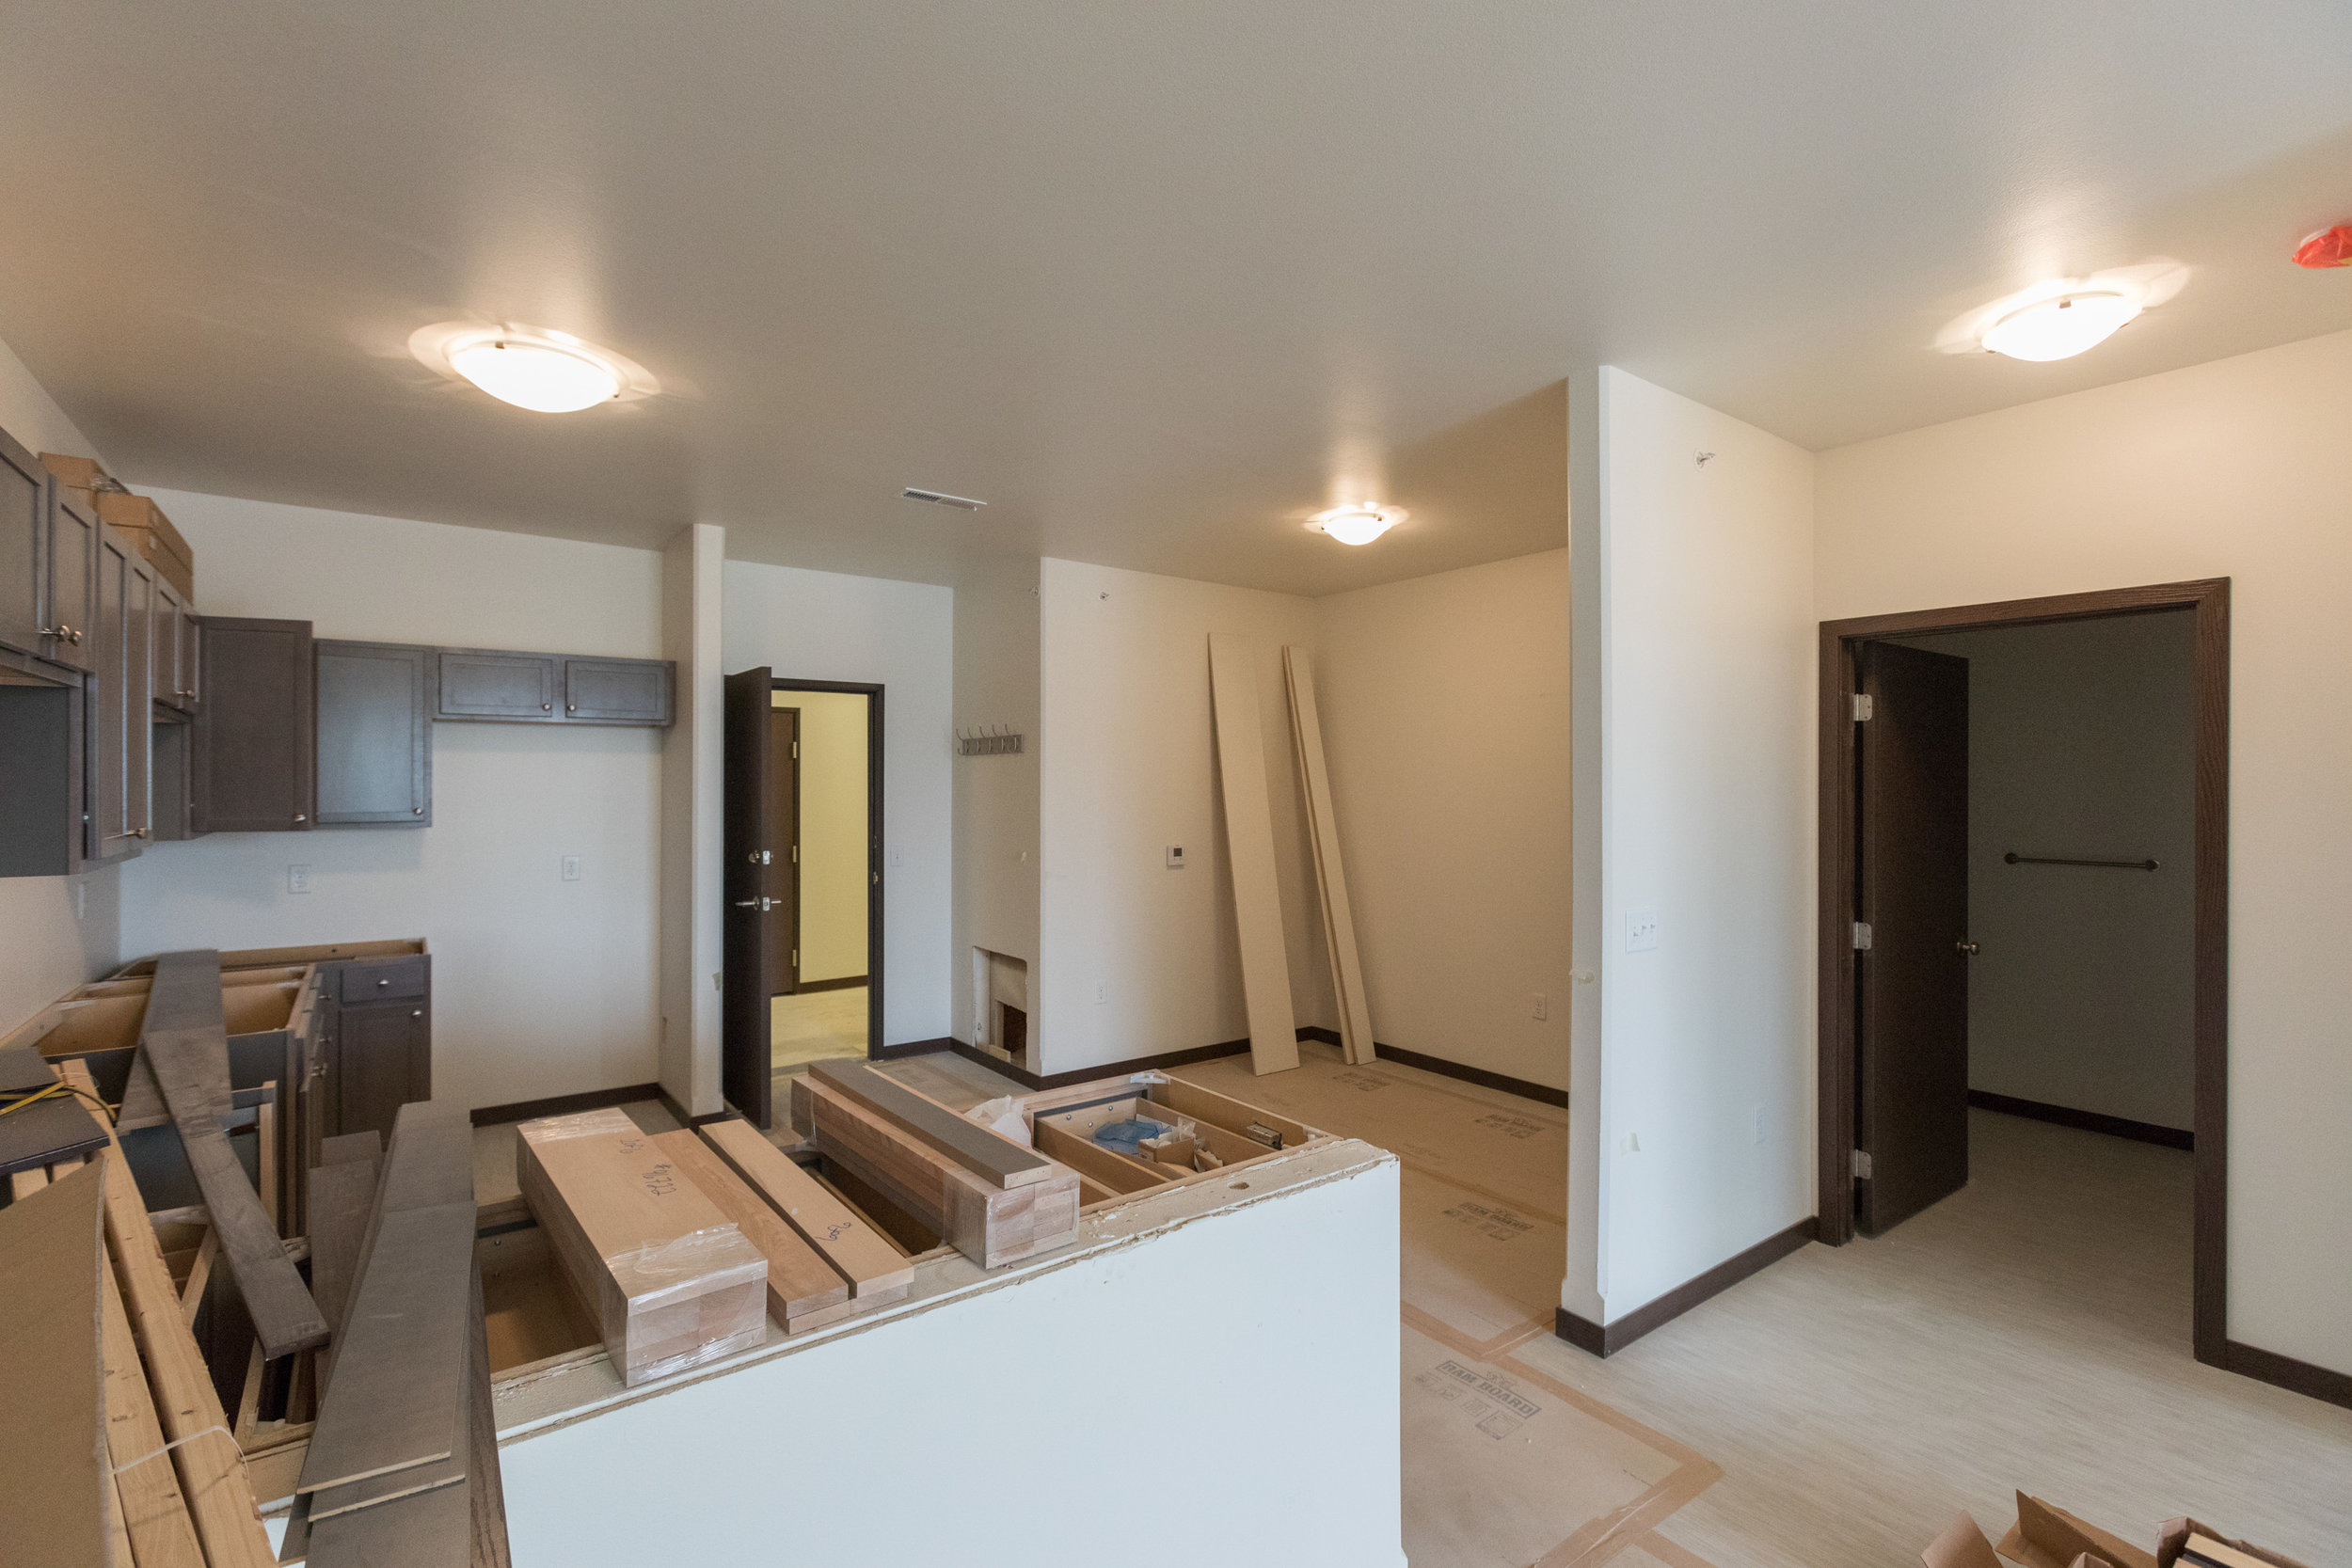 608 M2 Kitchen and Dining Area